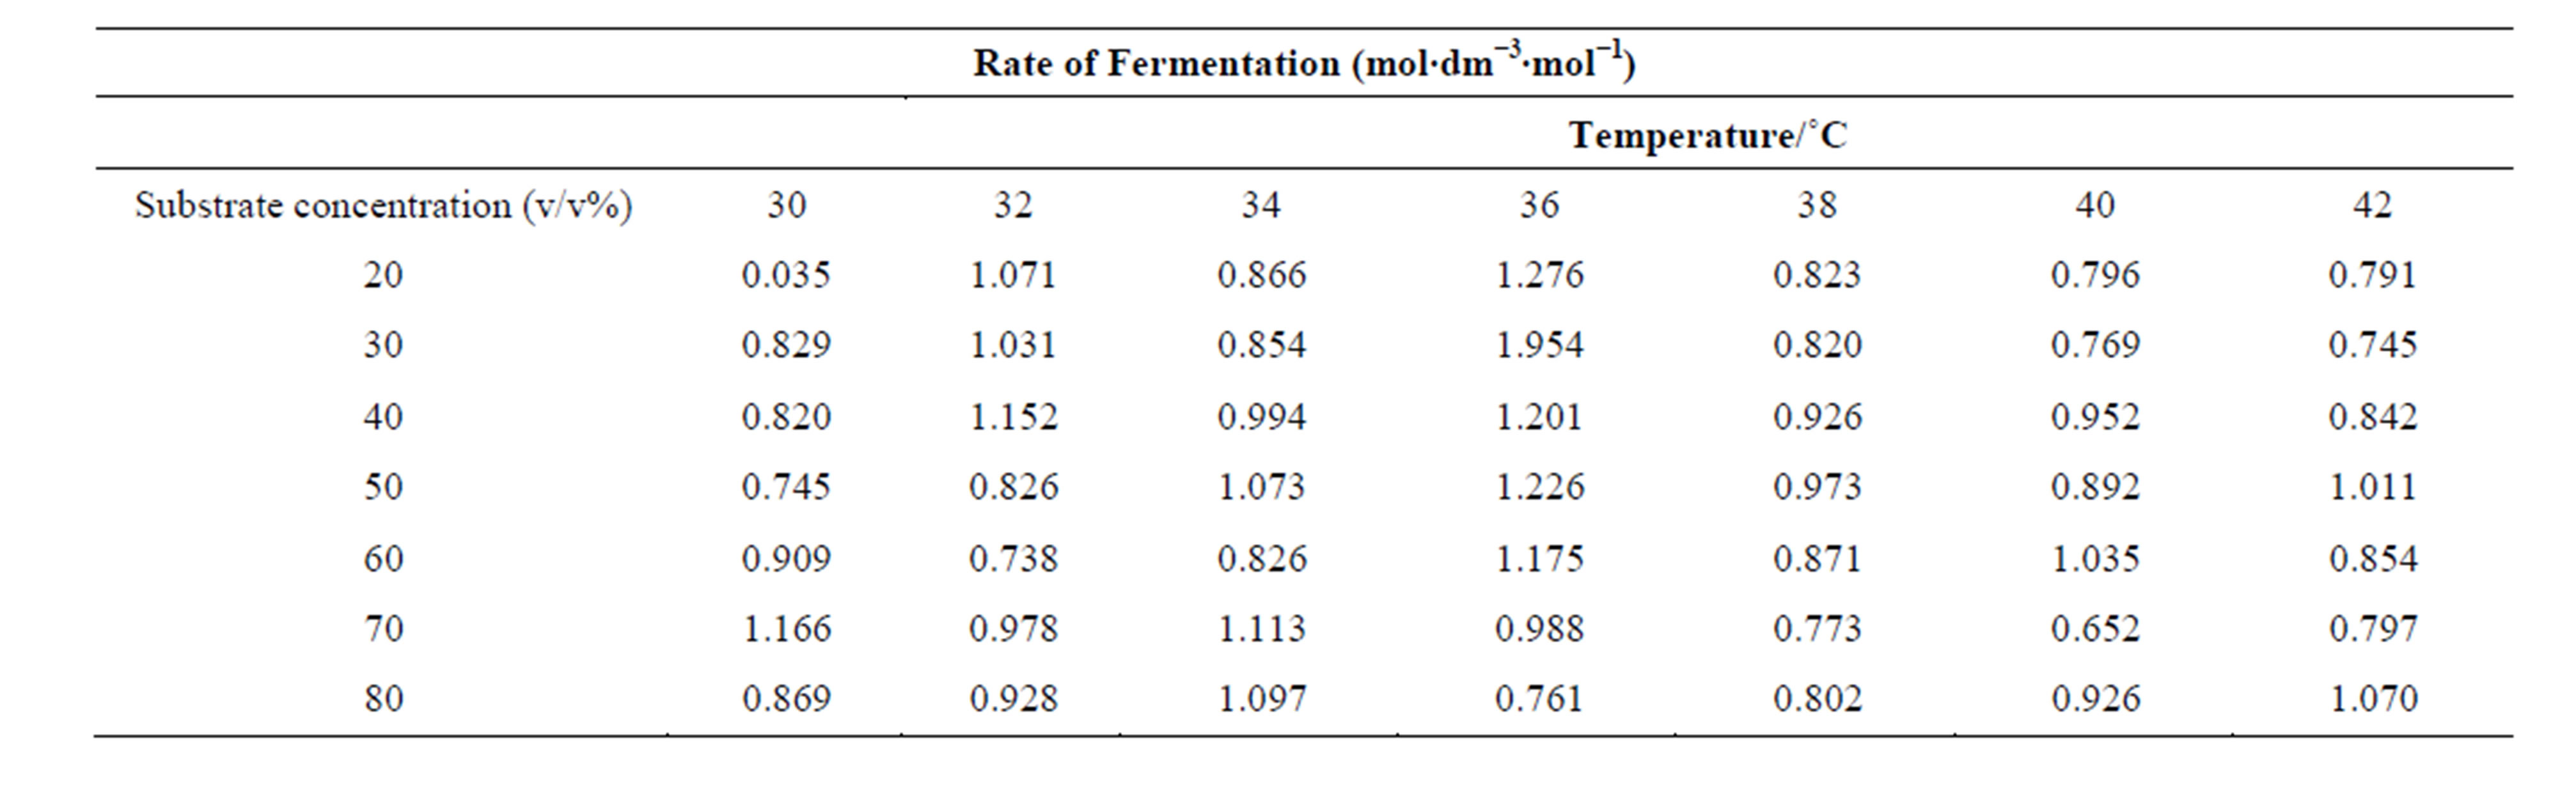 Thermodynamic Characterization Of Saccharomyces Cerevisiae